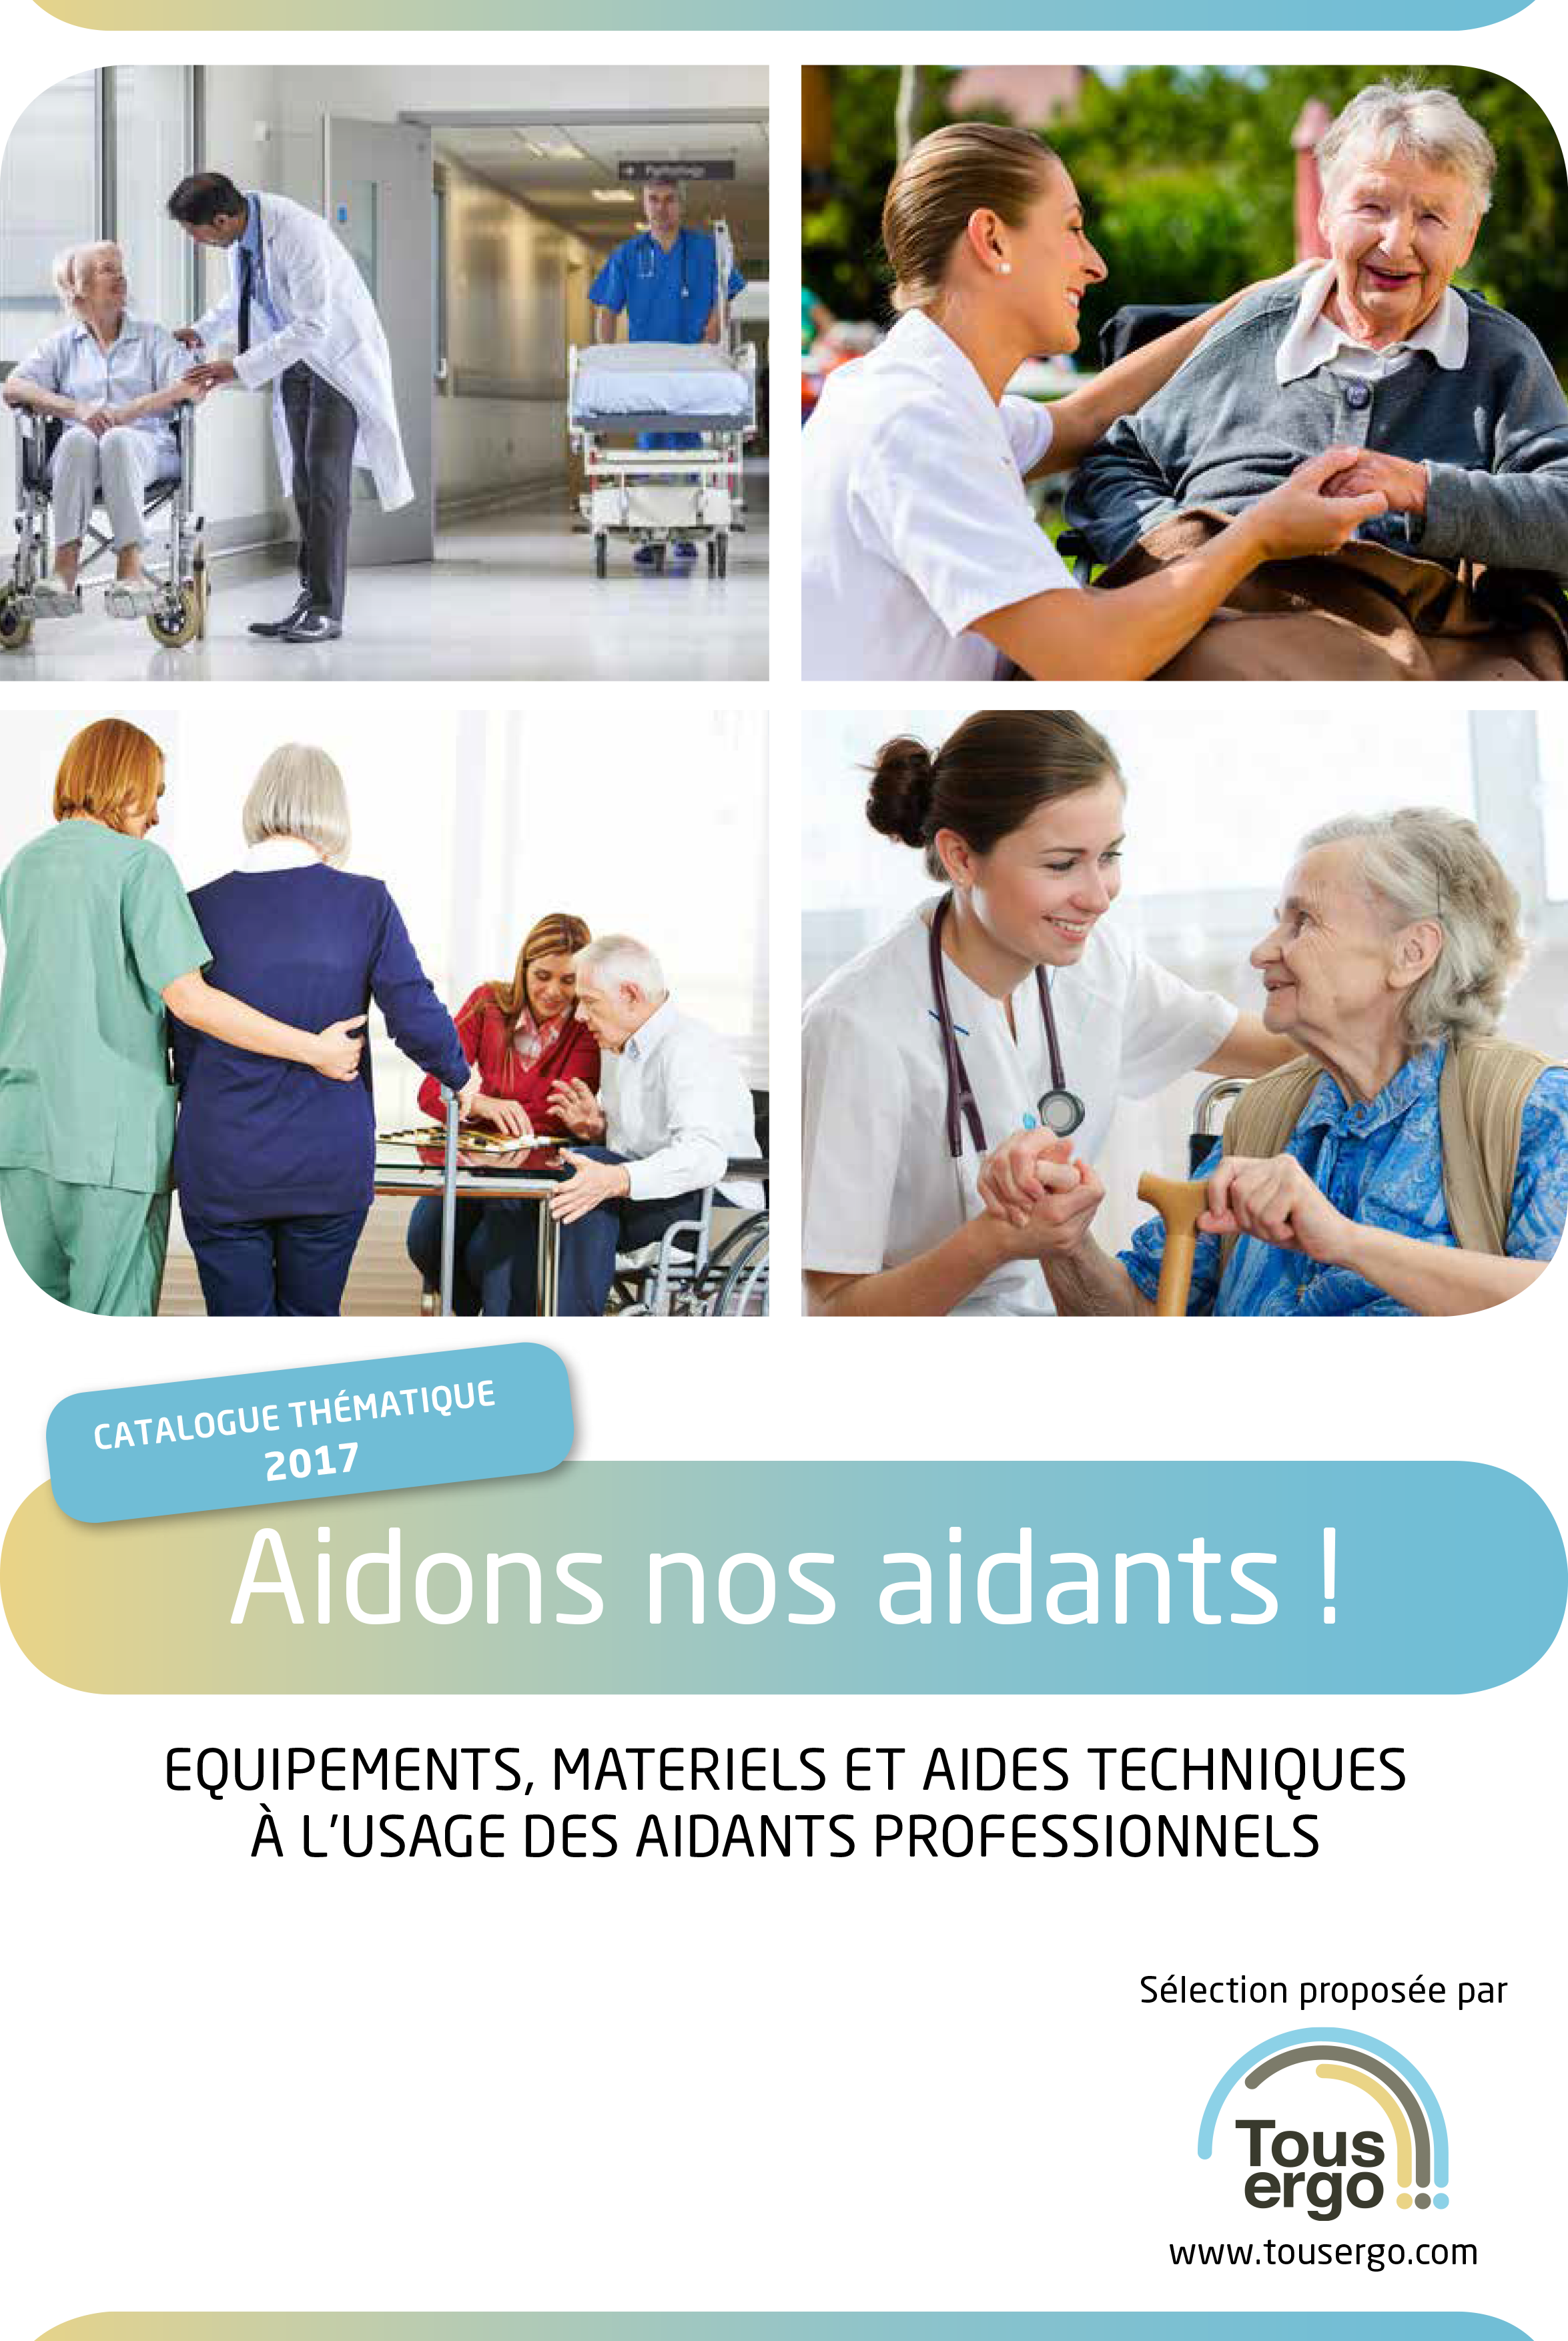 Catalogue aidons nos aidants tms